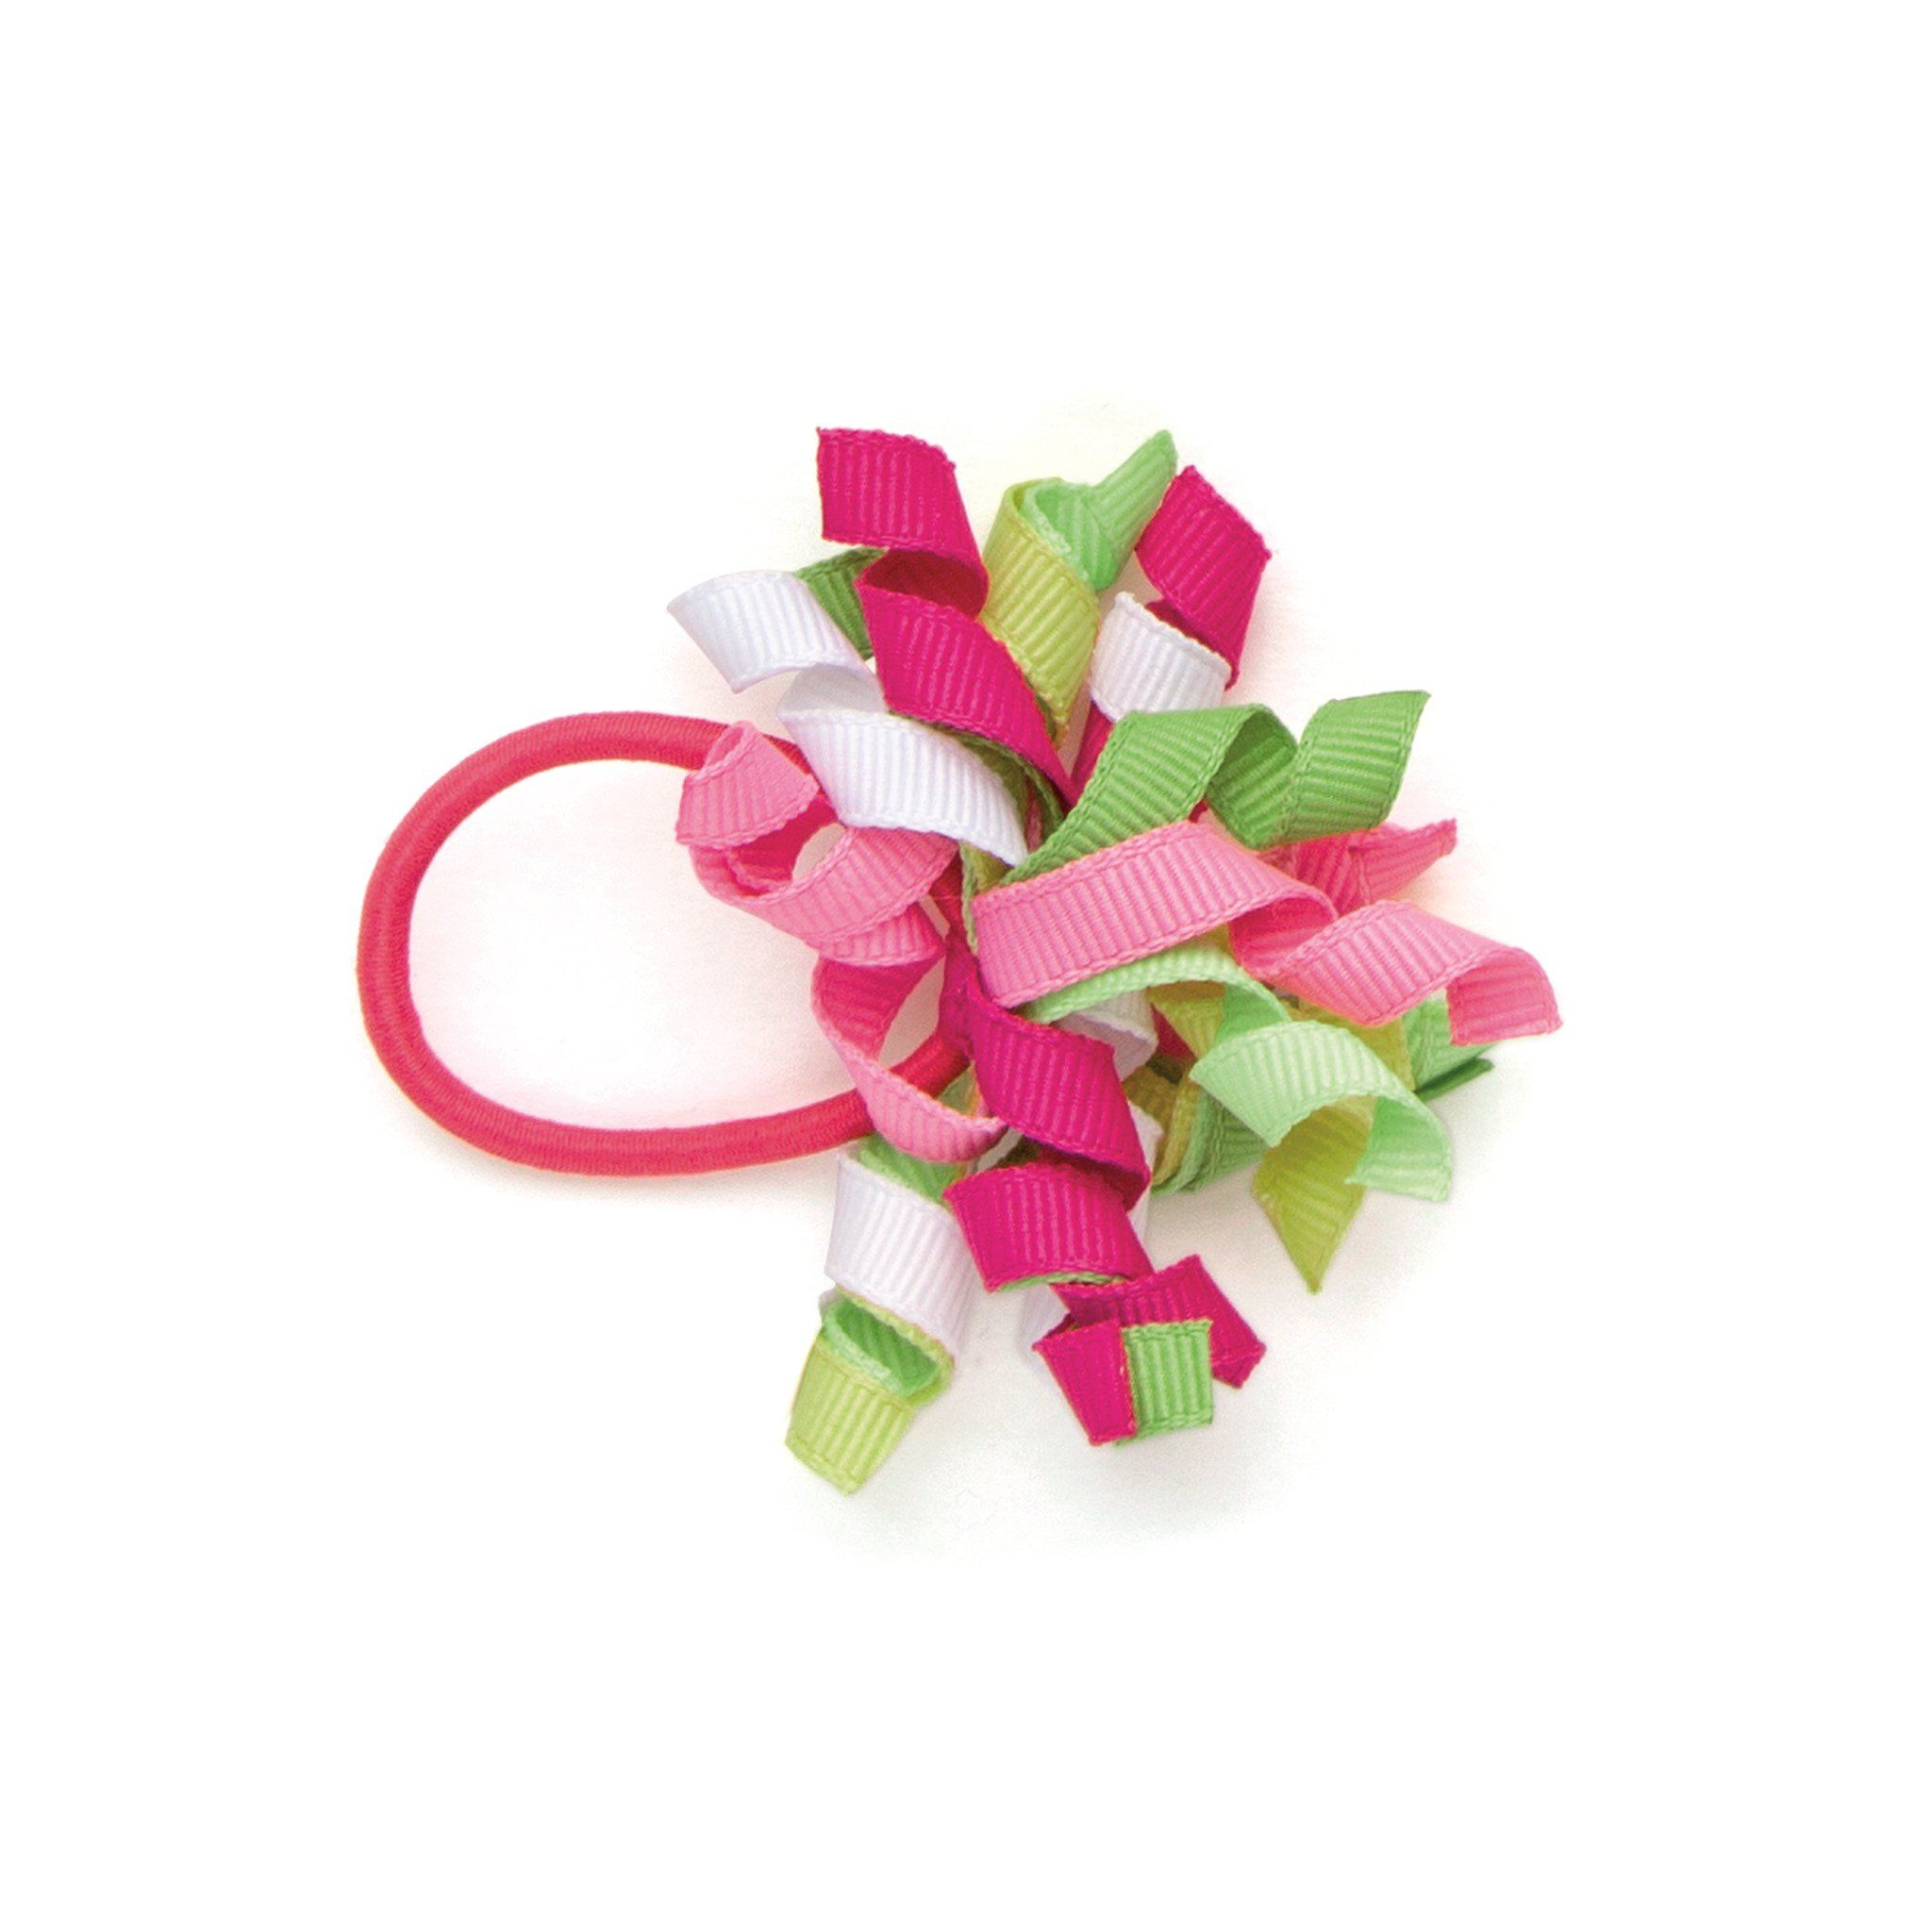 Tulip Royale pink green and white colourful curly hair elastic fits all 18 inch dolls.